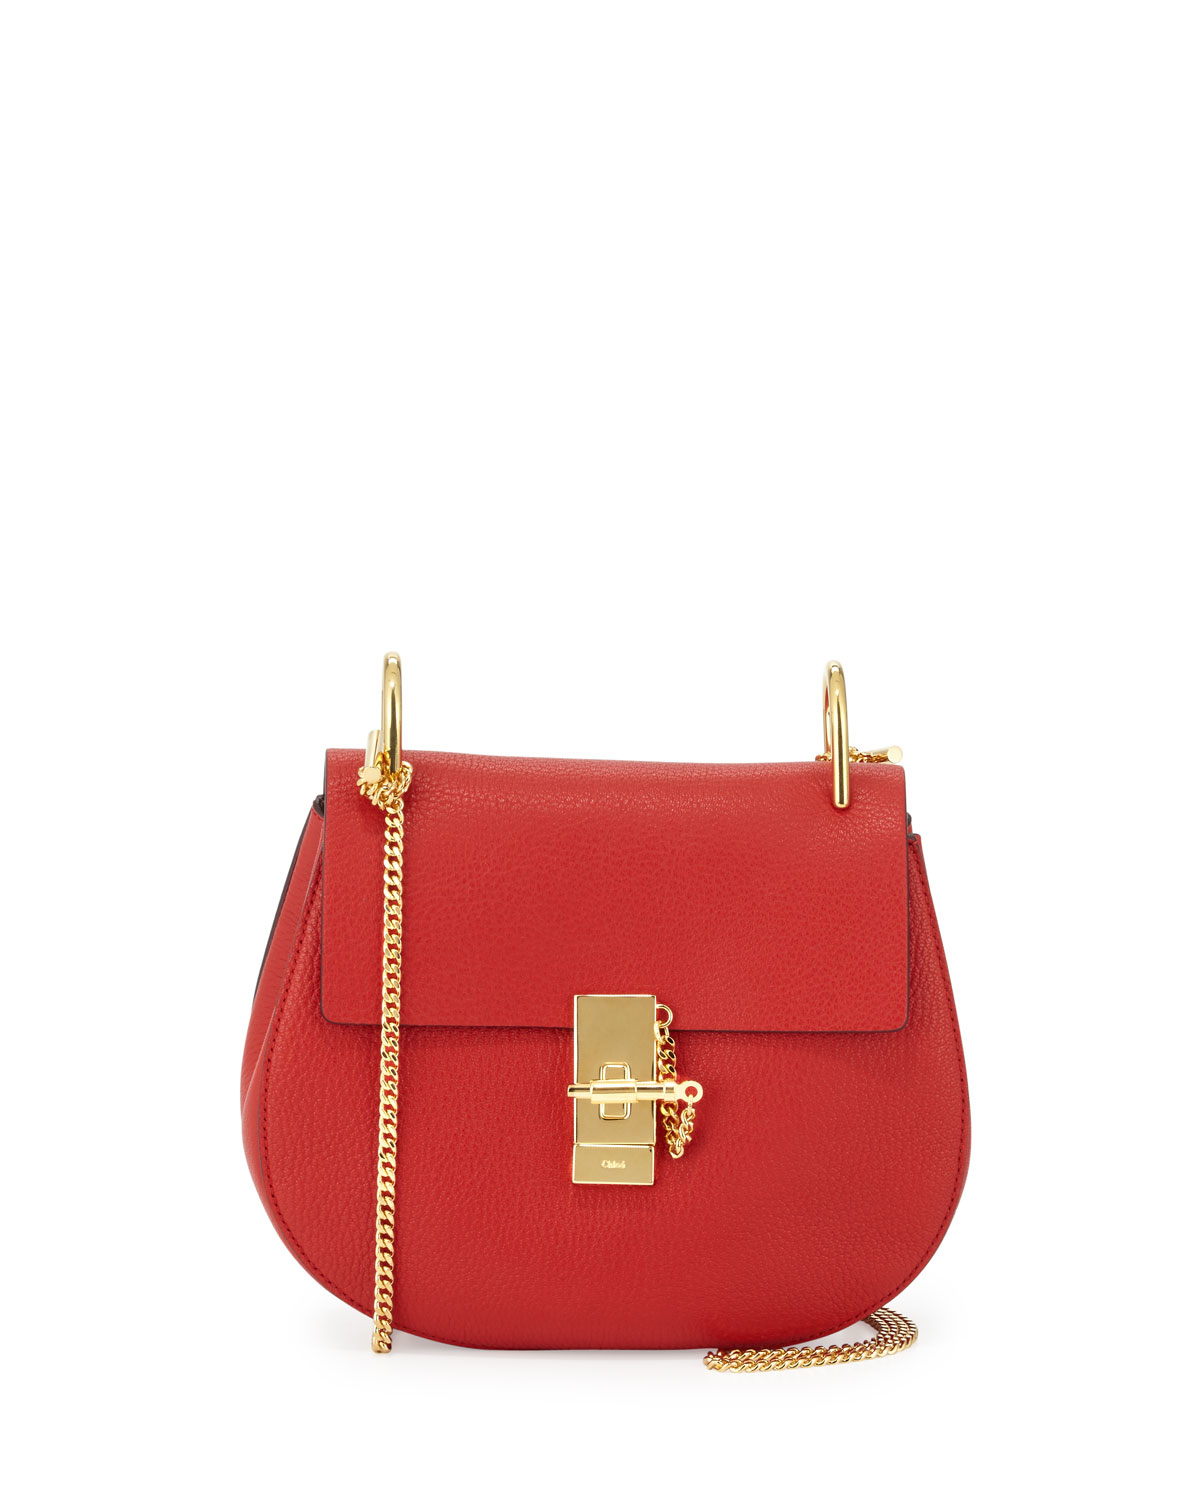 cbffa128514af Chloé Drew Small Chain Saddle Bag in Red - Lyst